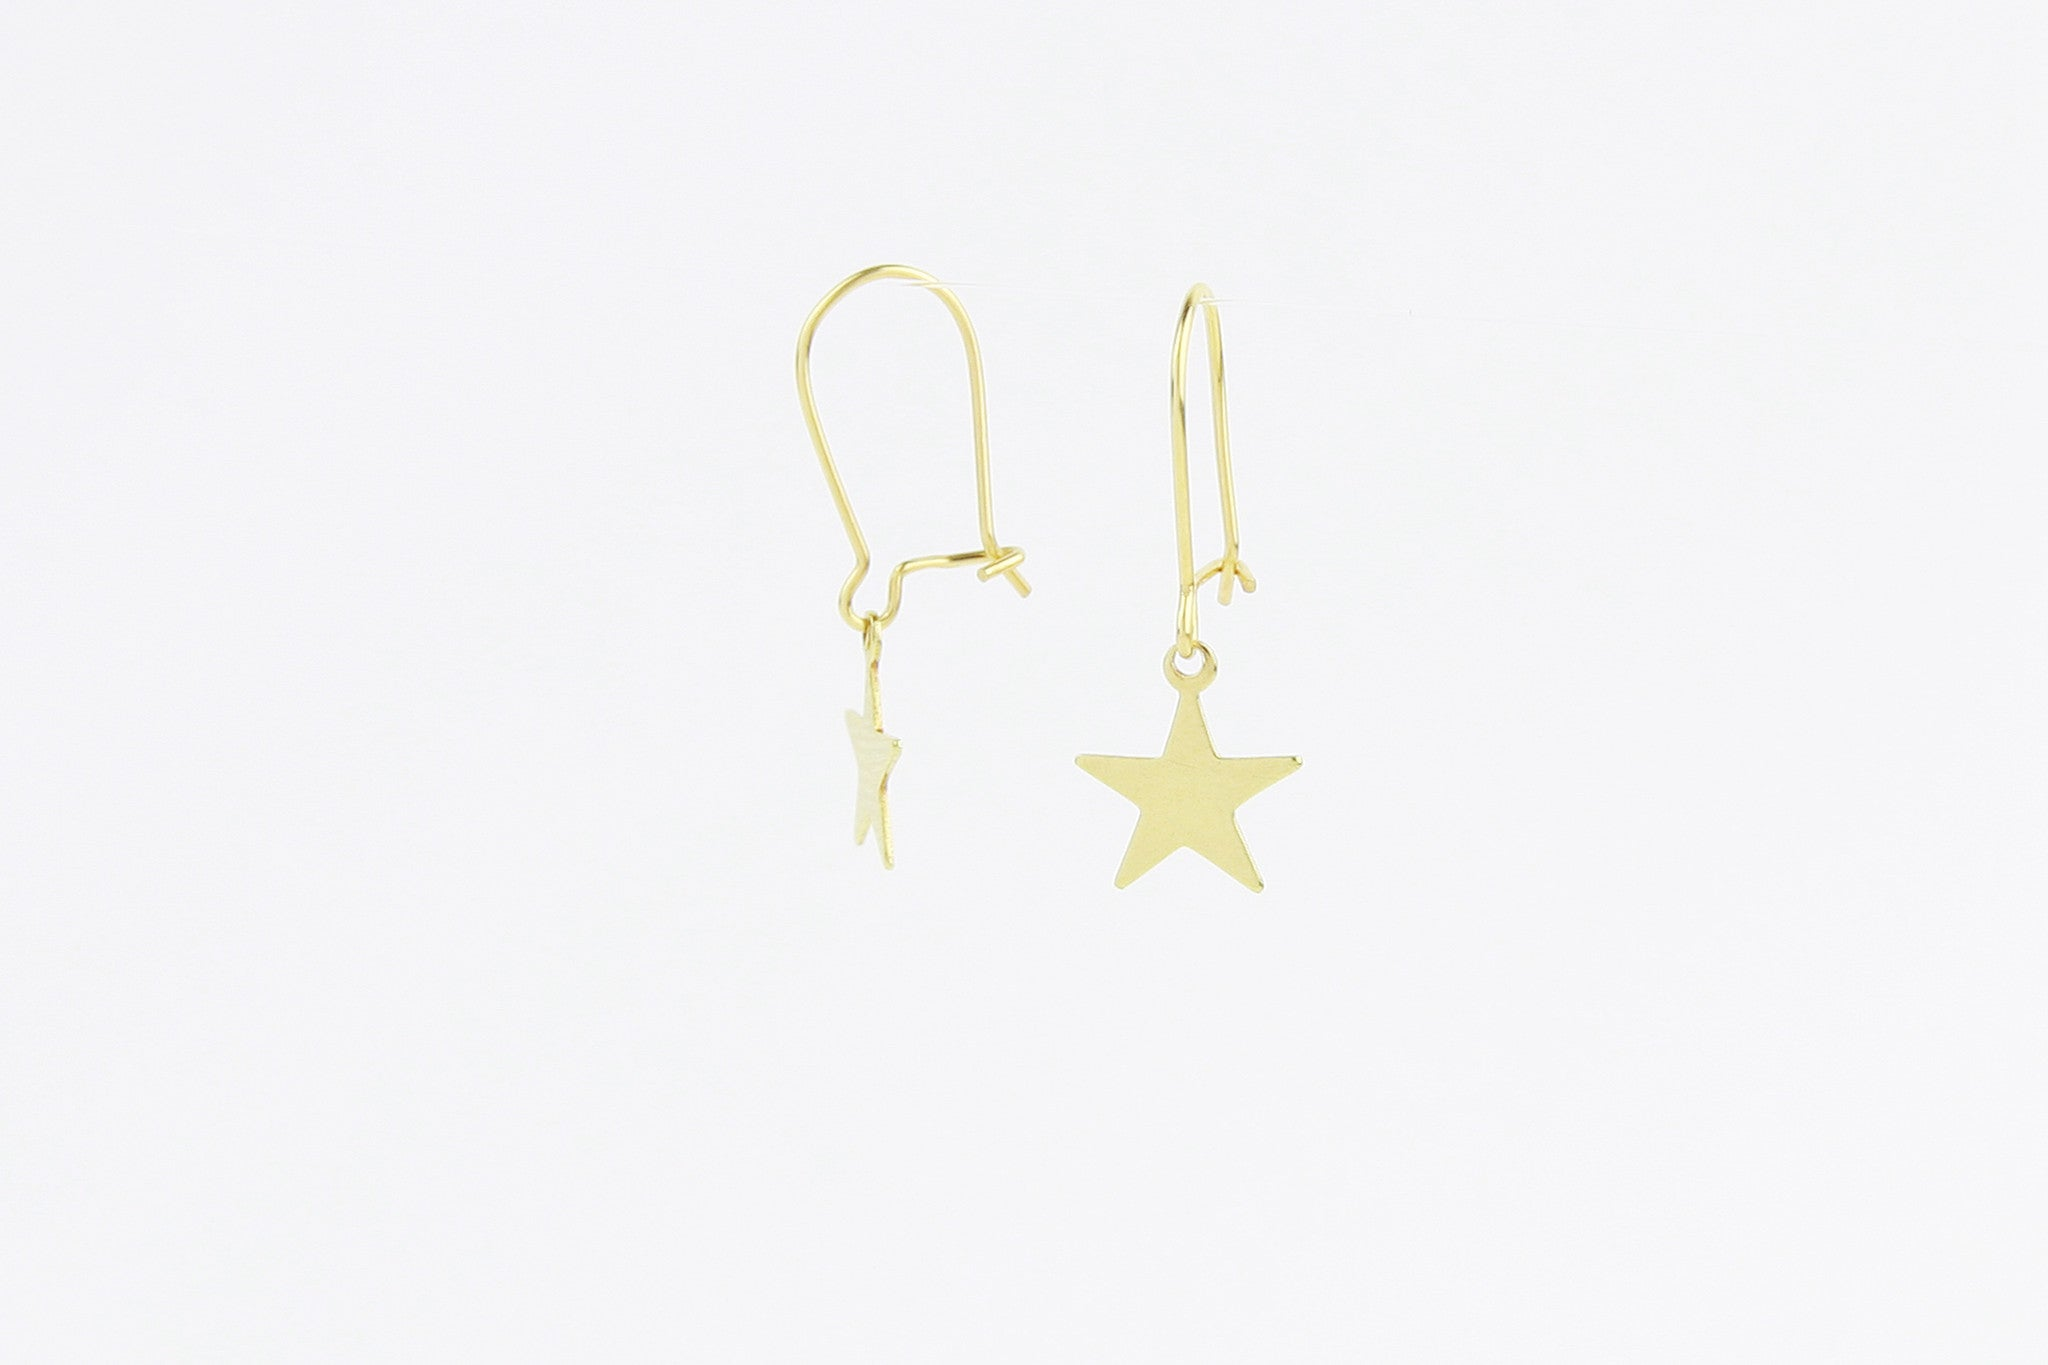 jewelberry ohrringe earrings plain star yellow gold plated sterling silver fine jewelry handmade with love fairtrade